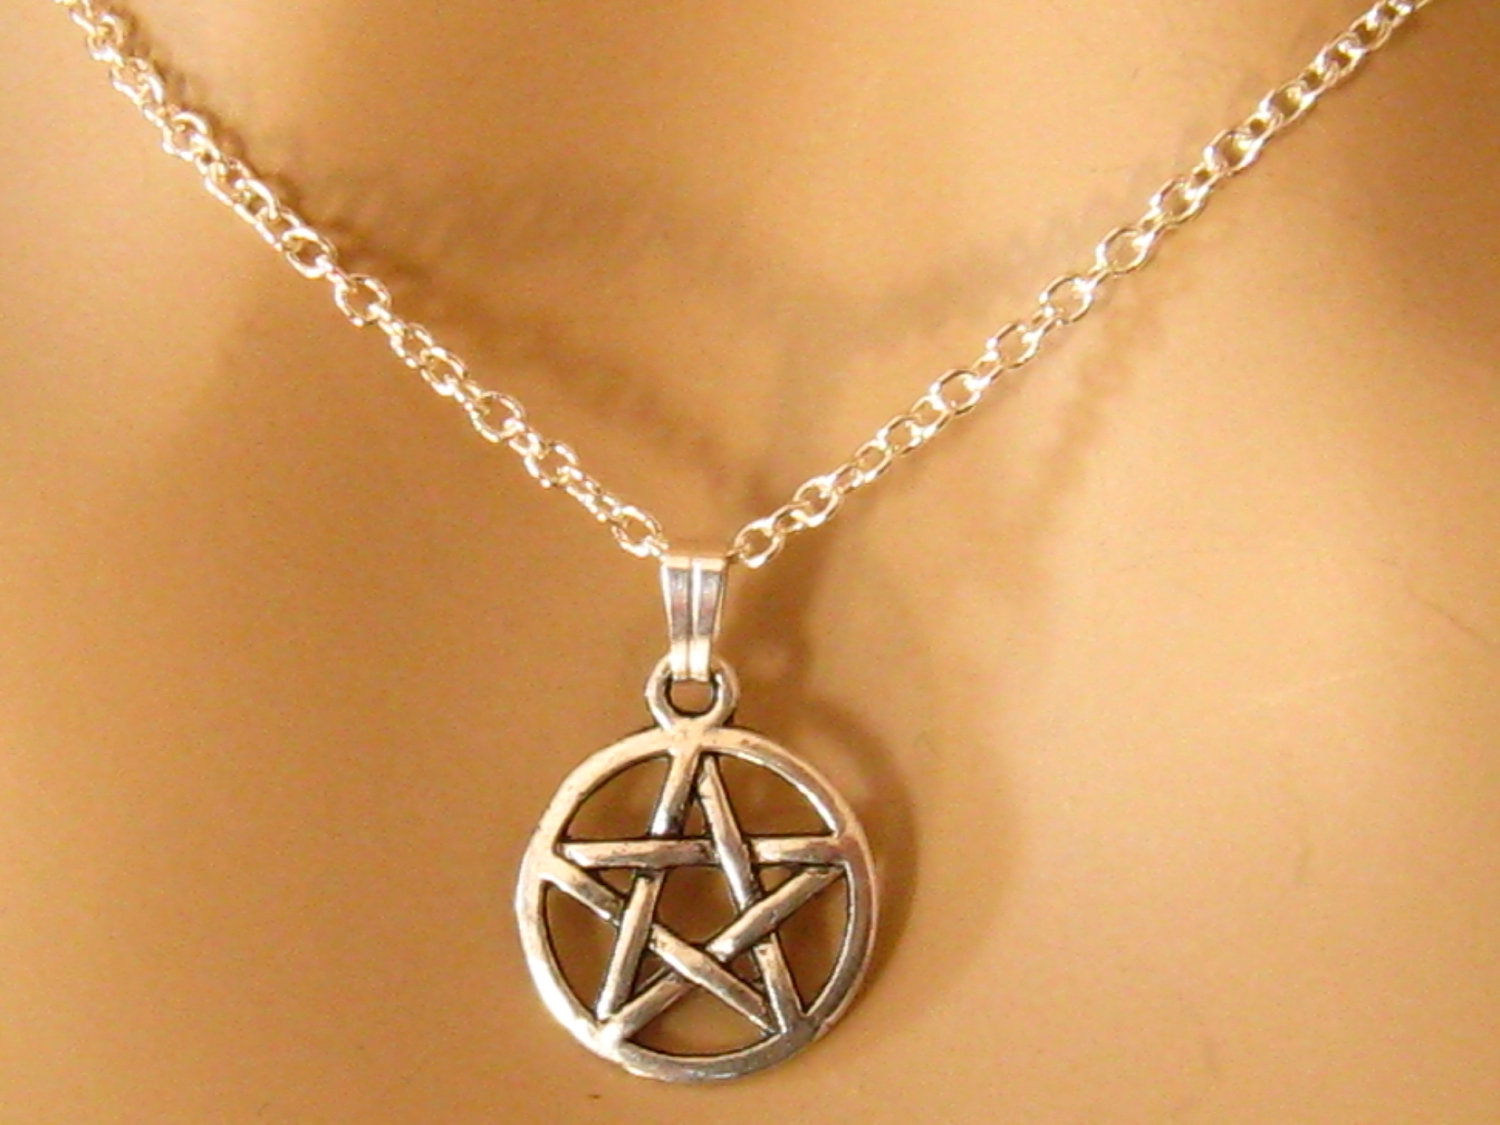 Pentagram Necklace, 5 Point Star Necklace, Pentacle, Pentagram